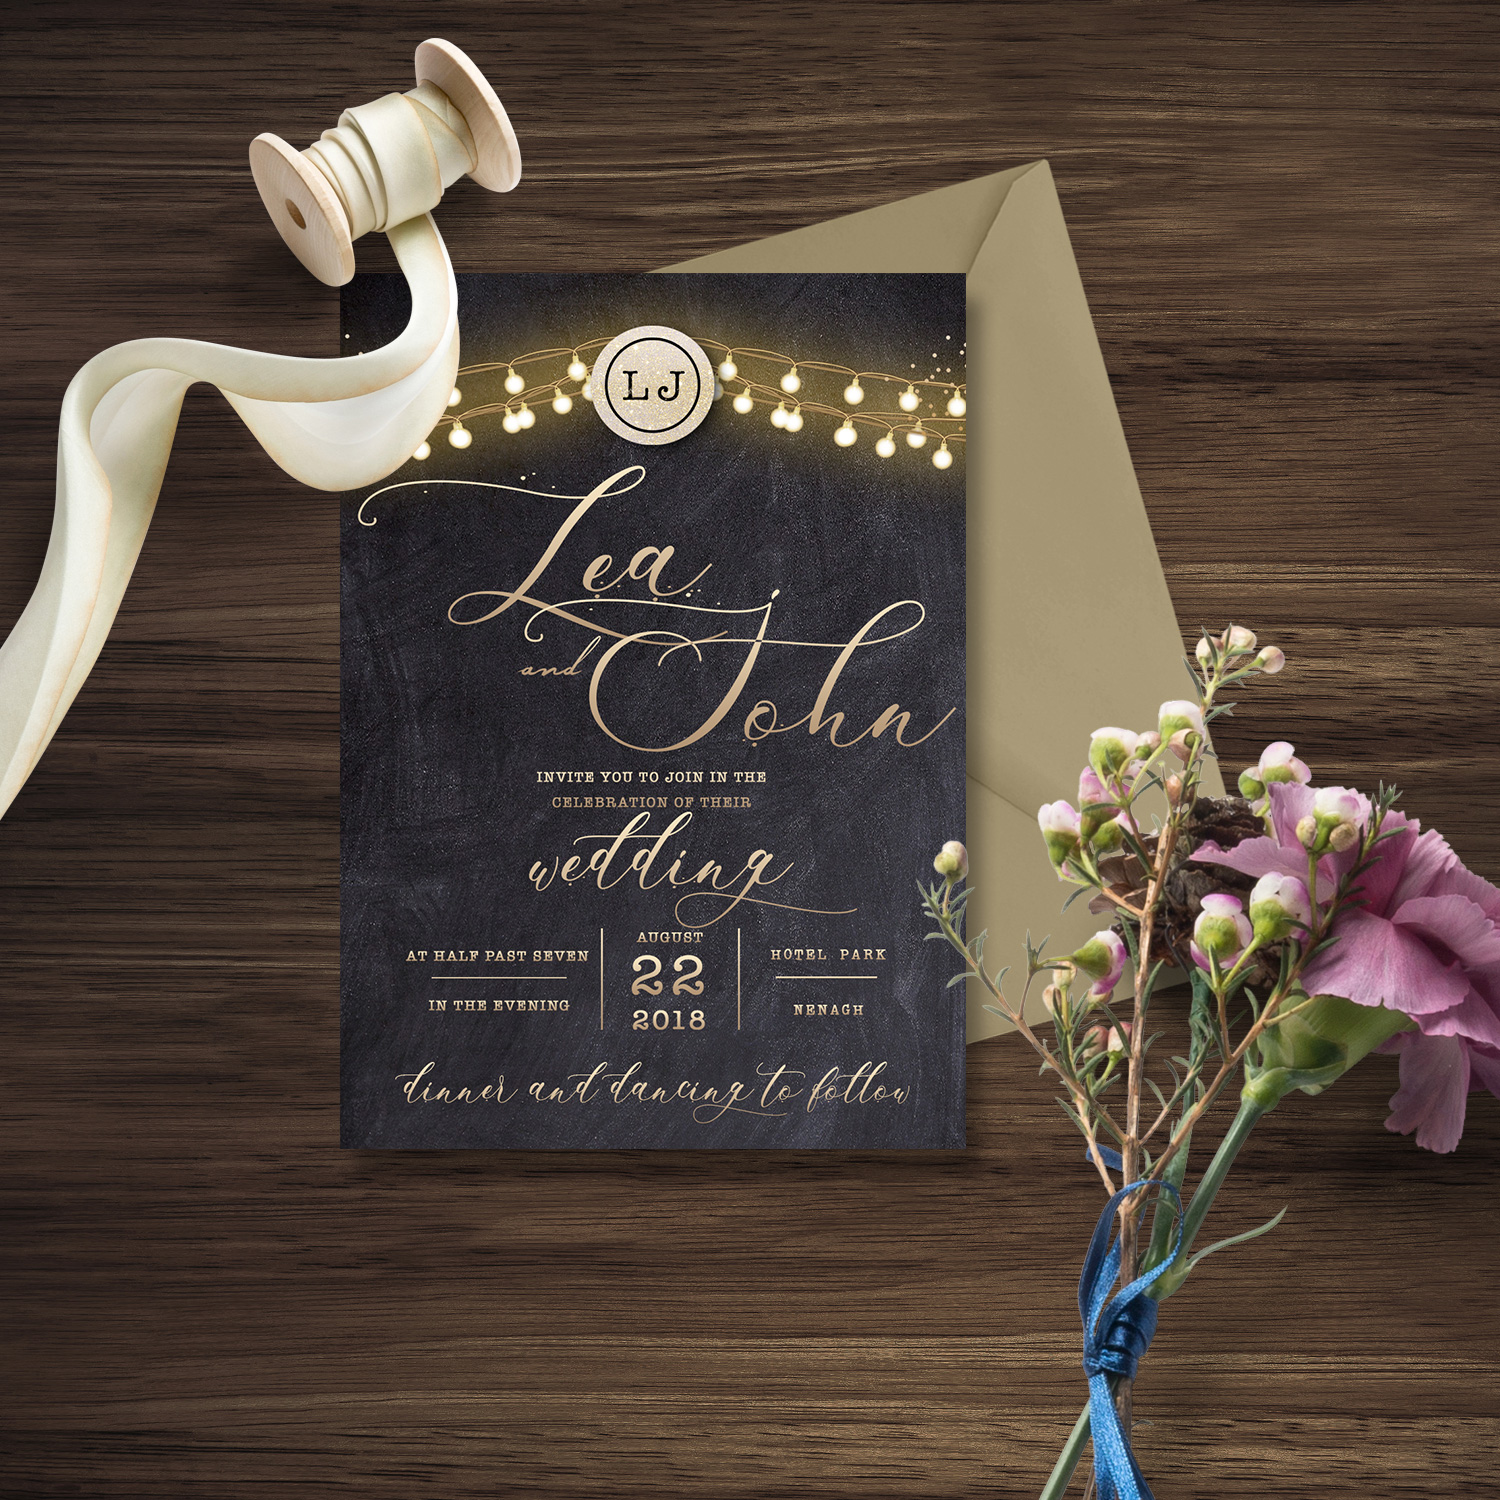 chalkboard and lights wedding invite blakc wedding invite killarney